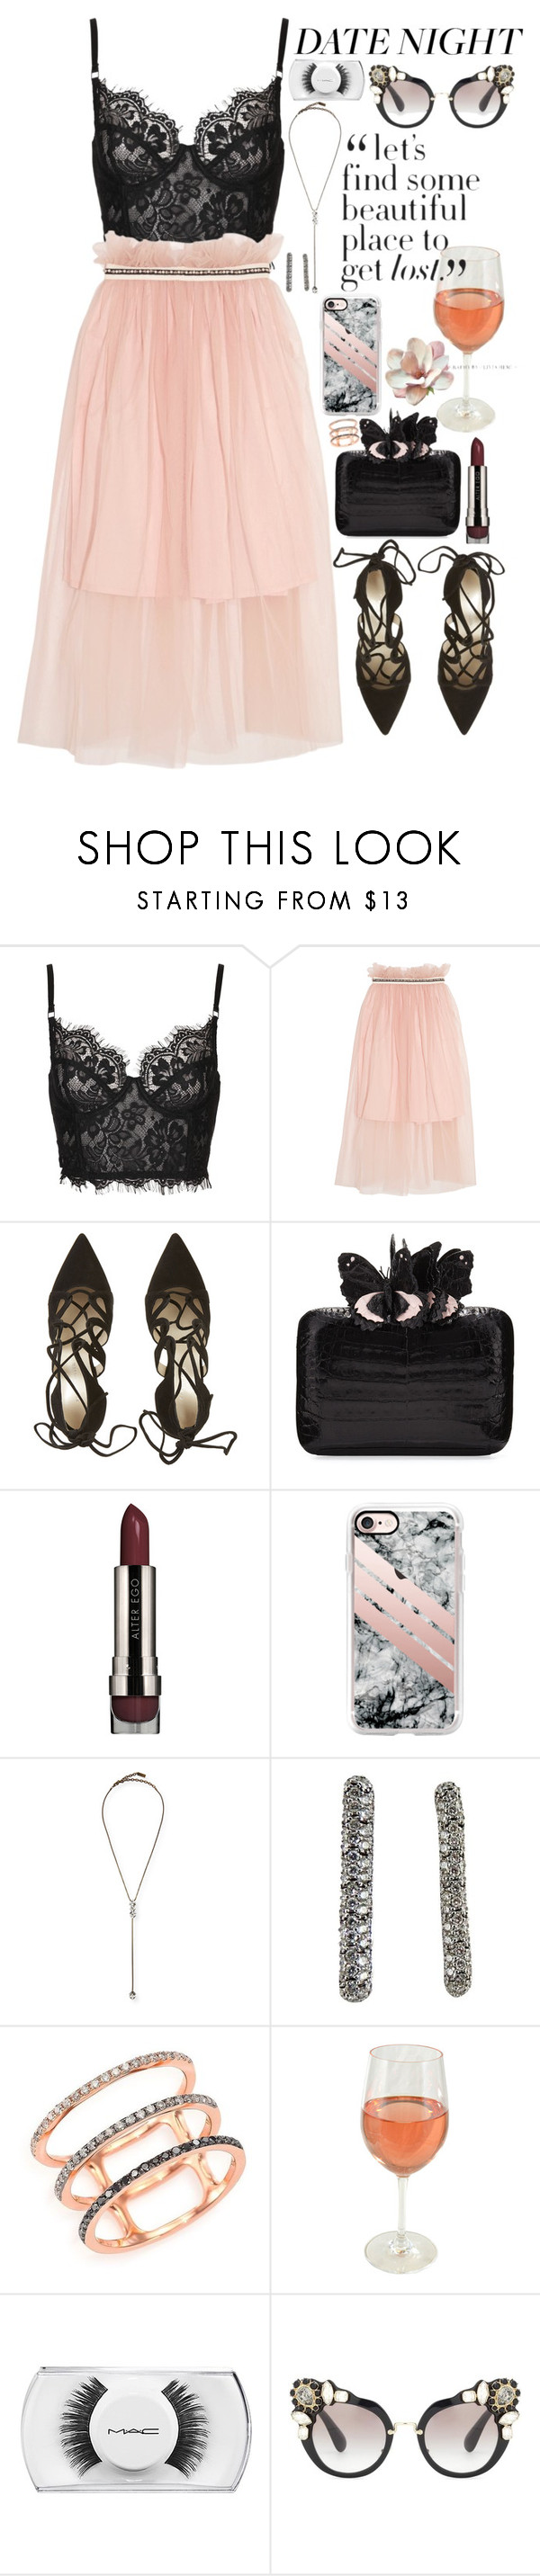 """""""❤°"""" by jordan-mobley ❤ liked on Polyvore featuring Mother of Pearl, Nancy Gonzalez, LORAC, Casetify, Auden, Jona, EF Collection, MAC Cosmetics and Miu Miu"""